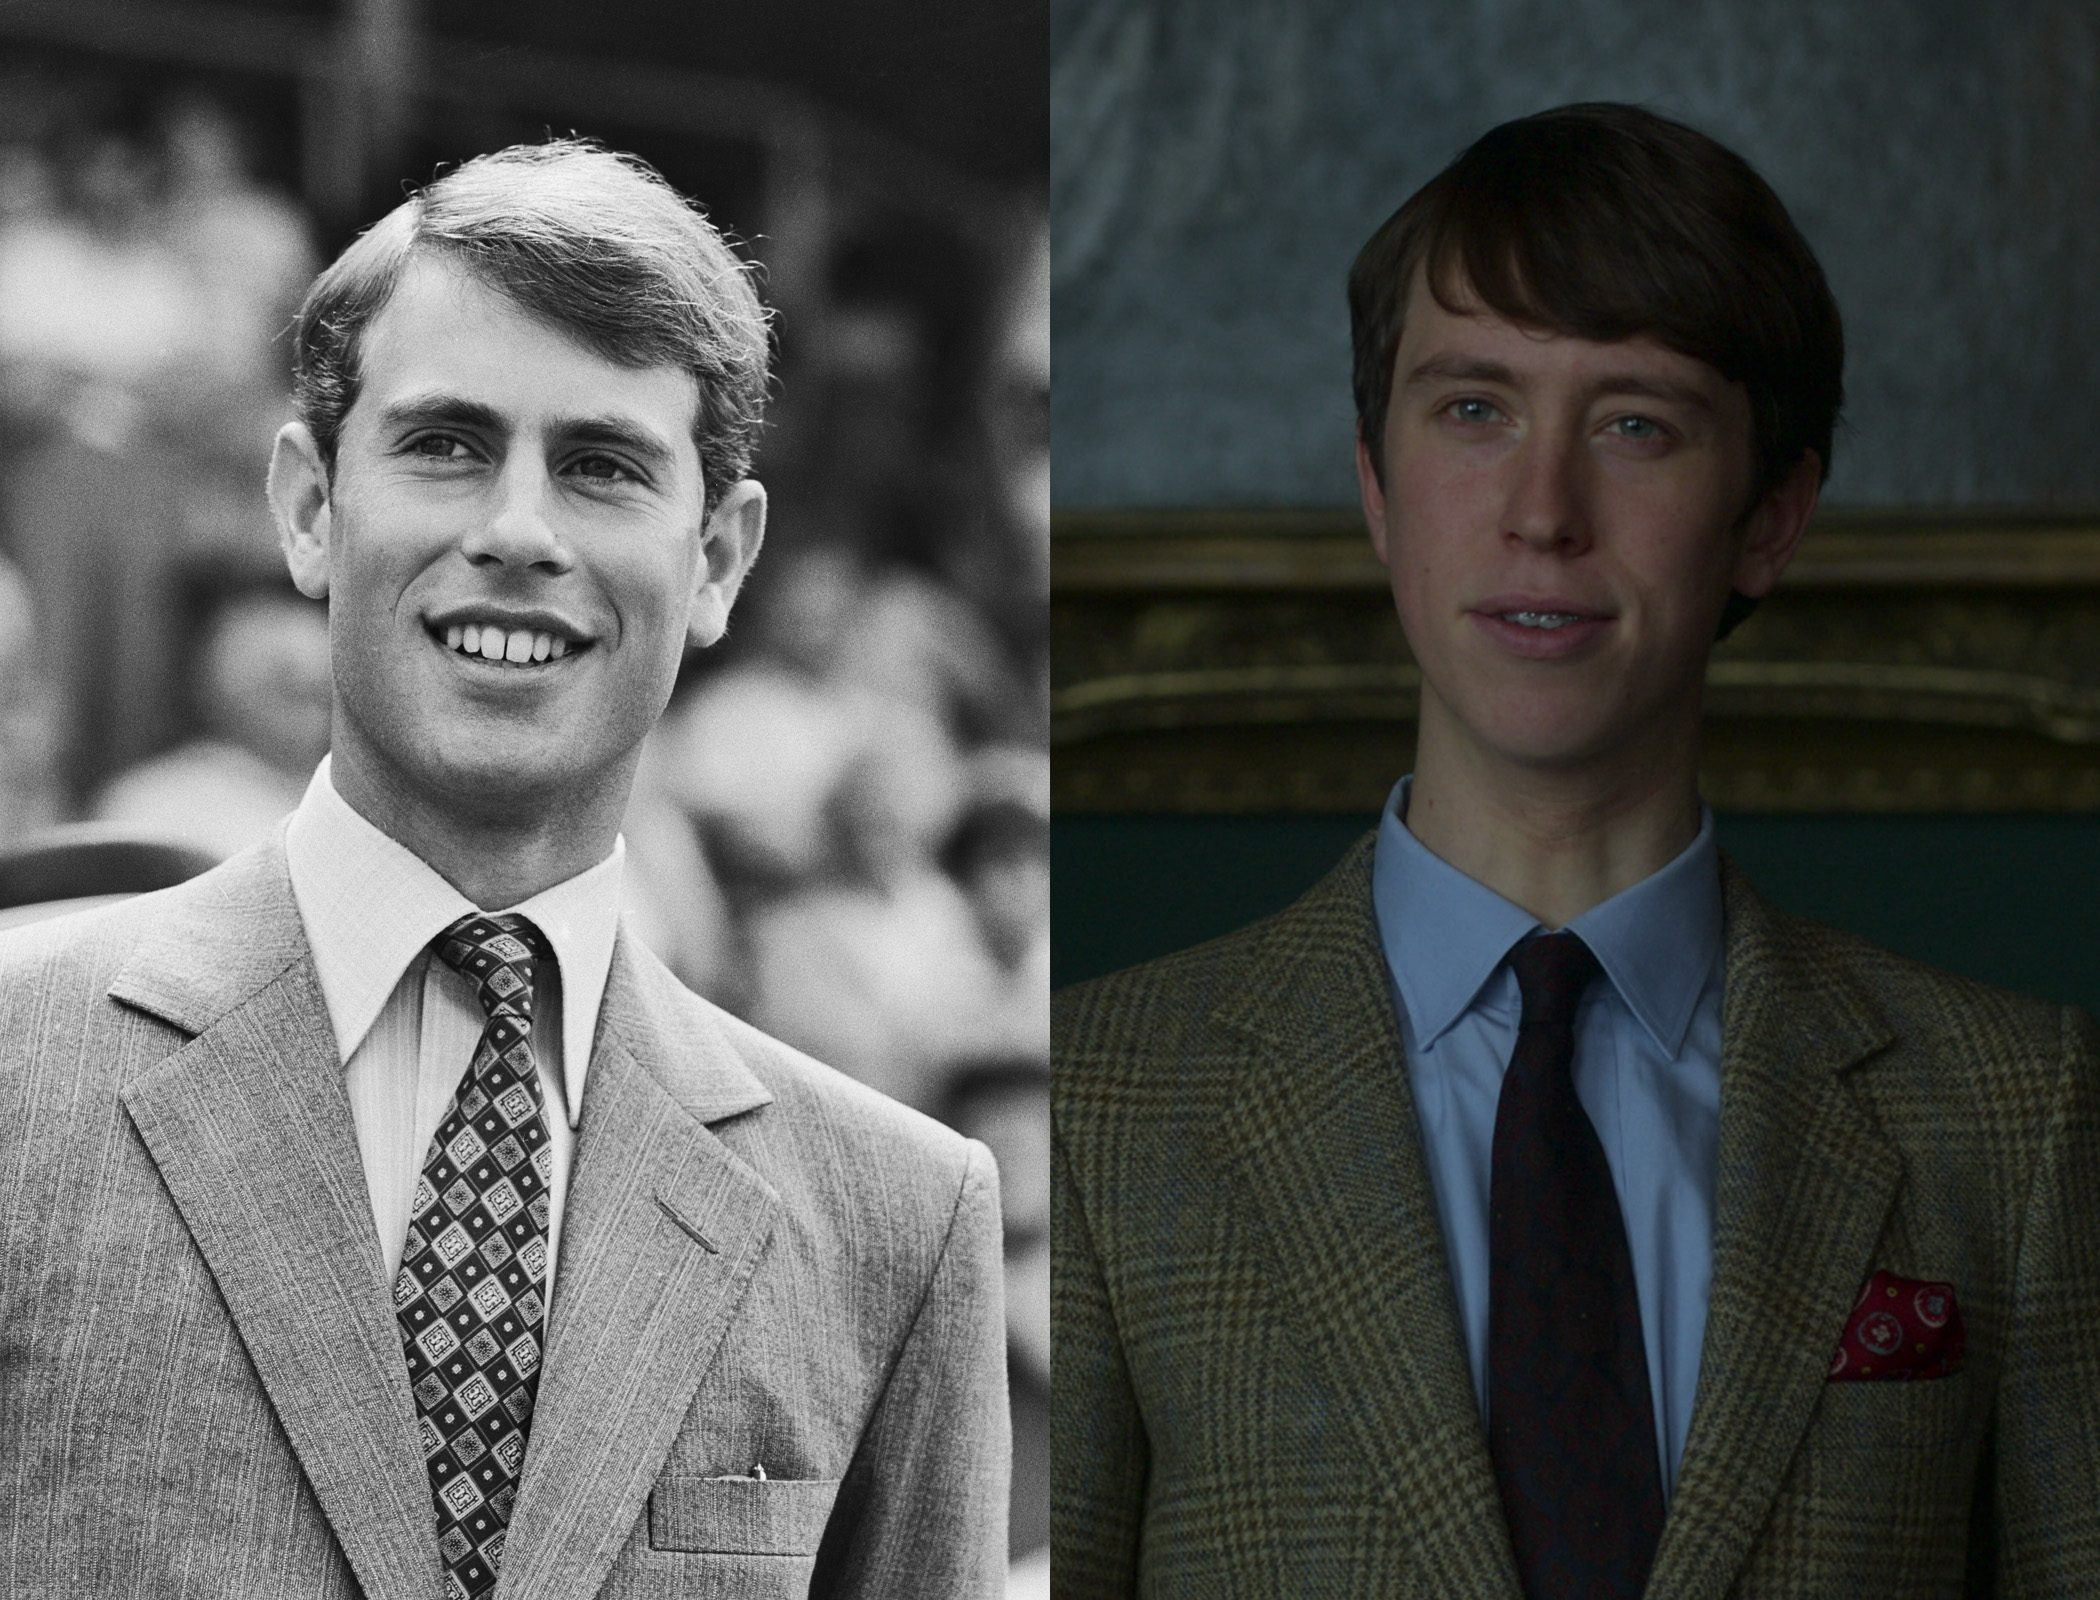 Prince Edward, as played by Angus Imrie